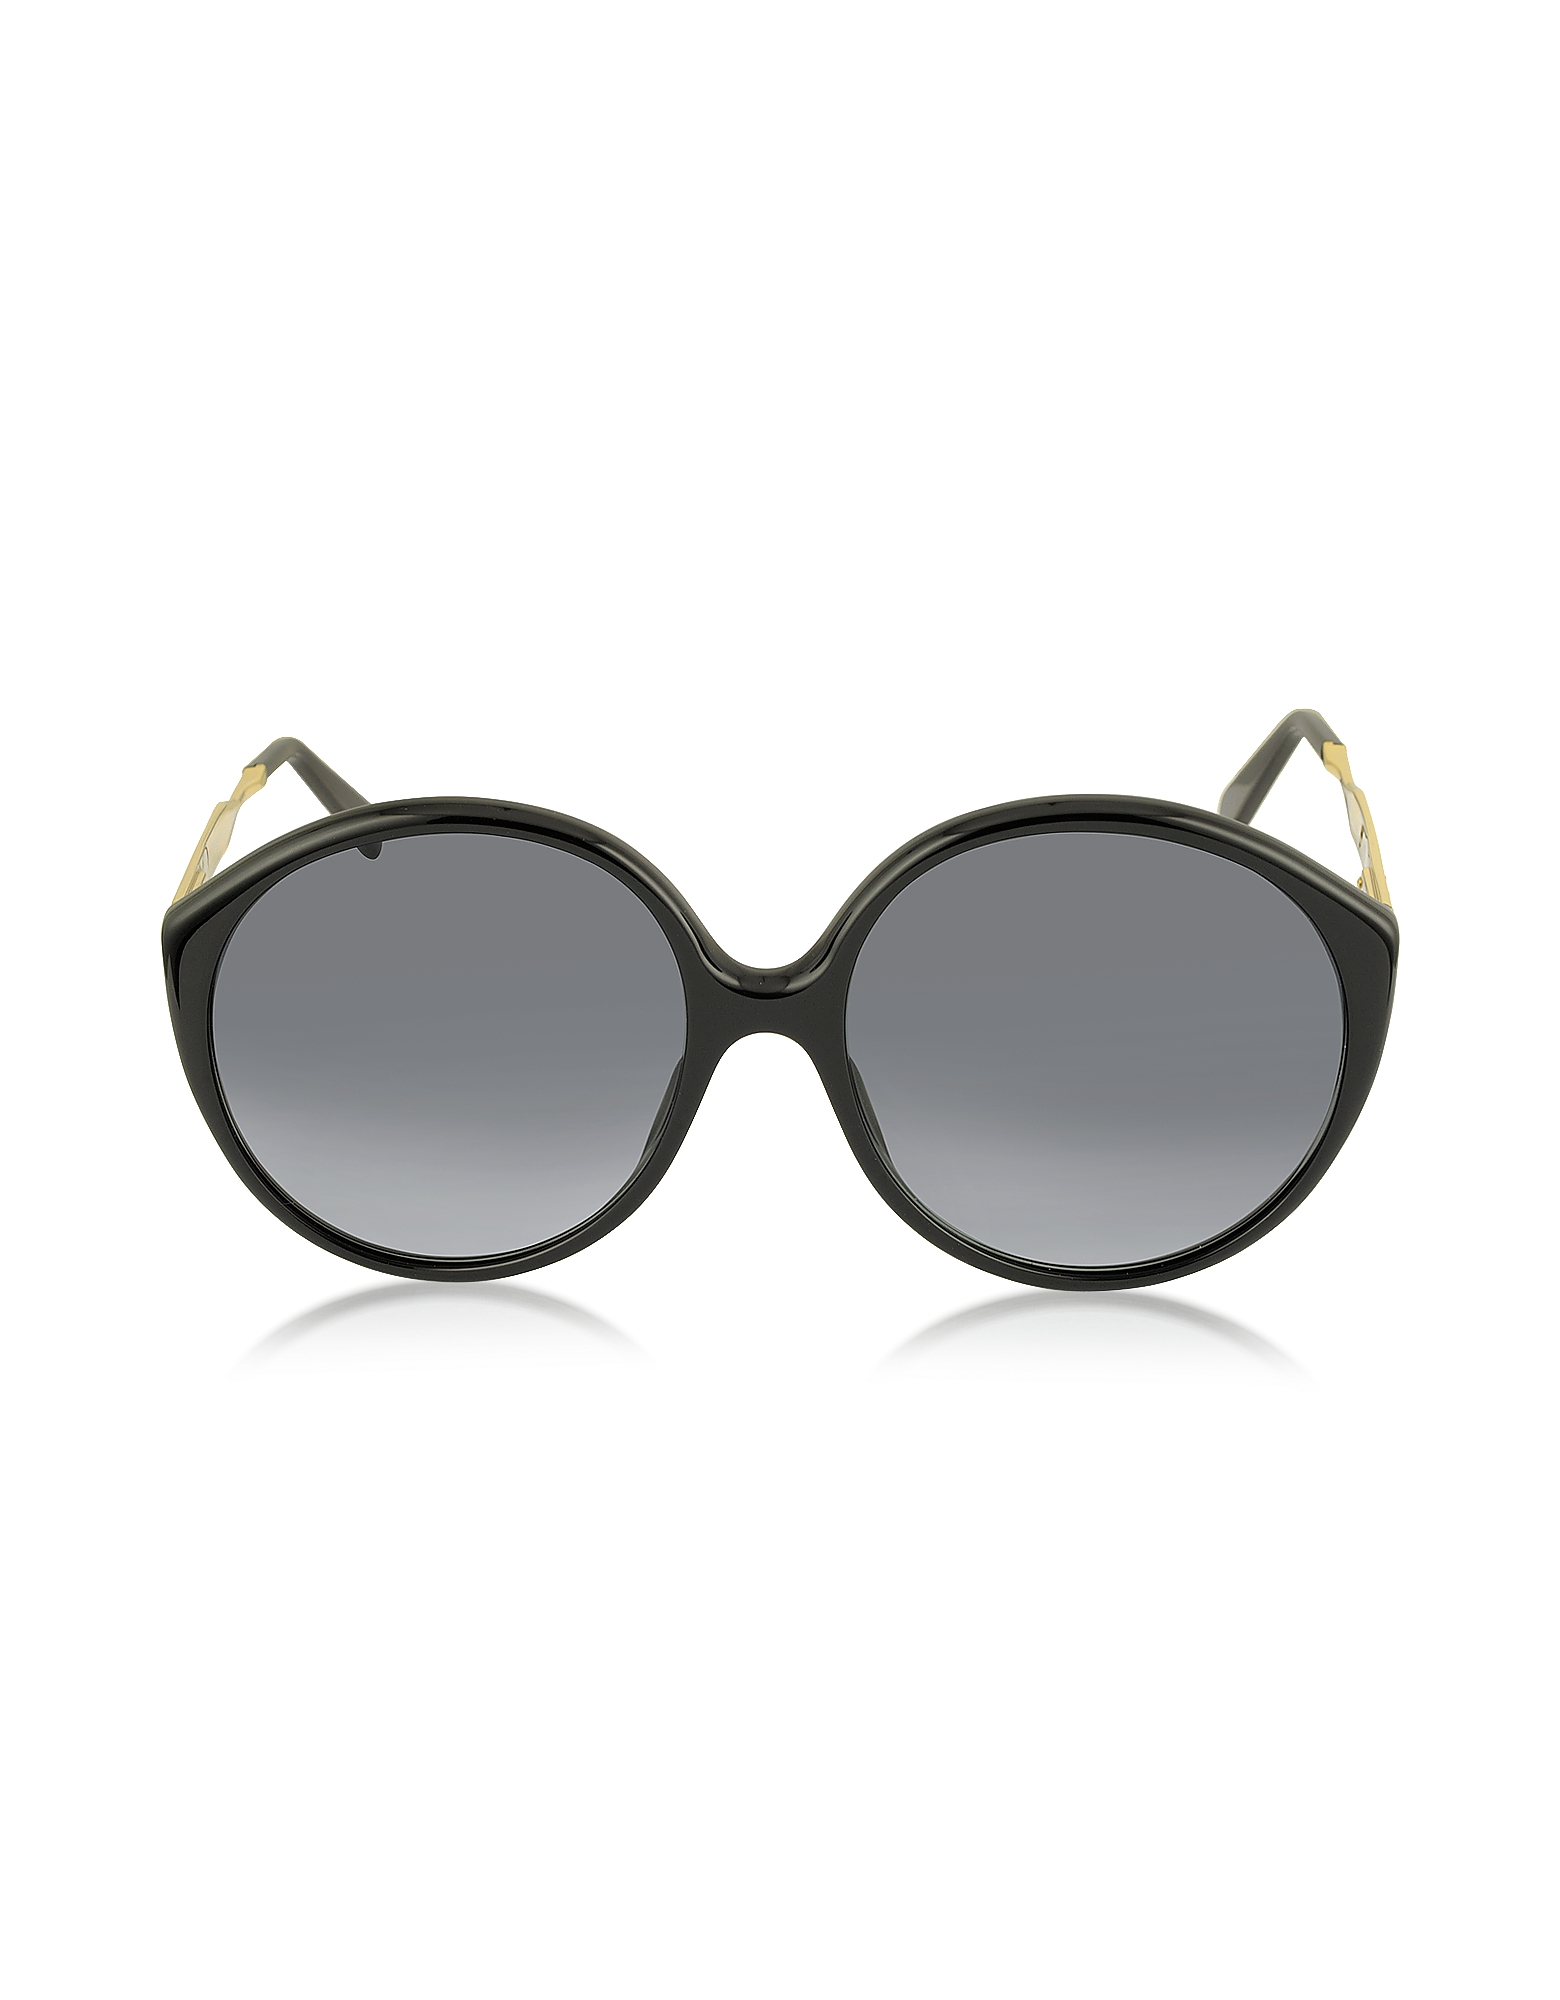 Marc Jacobs Sunglasses, MJ 613/S Acetate Round Women's Sunglasses